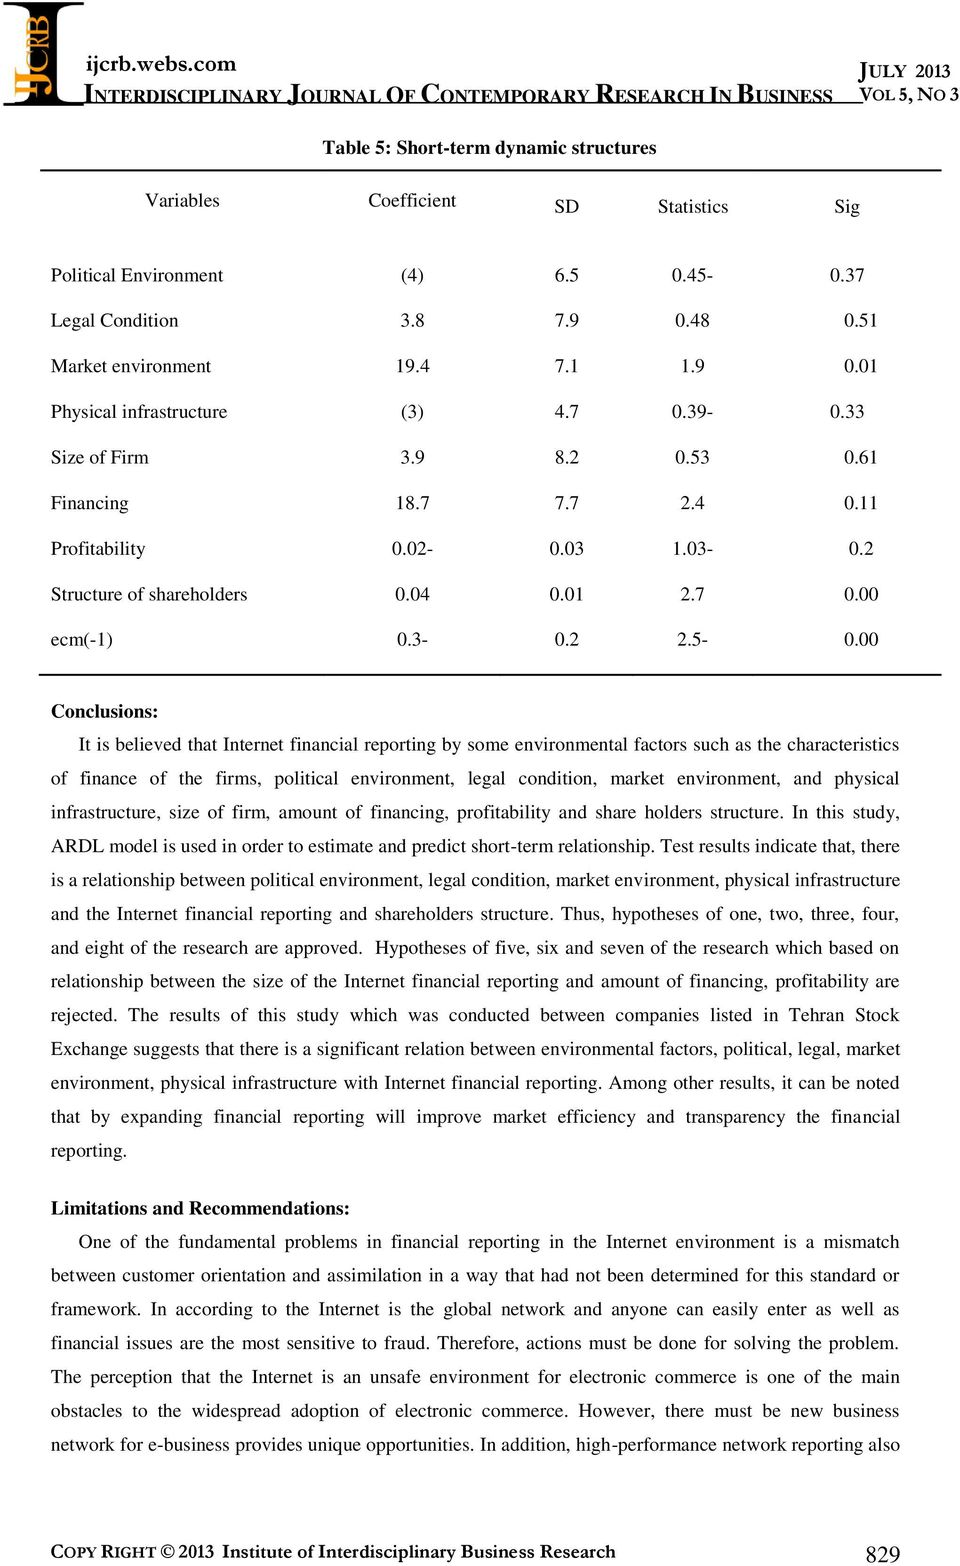 00 Conclusions: t is believed that nternet financial reporting by some environmental factors such as the characteristics of finance of the firms, political environment, legal condition, market